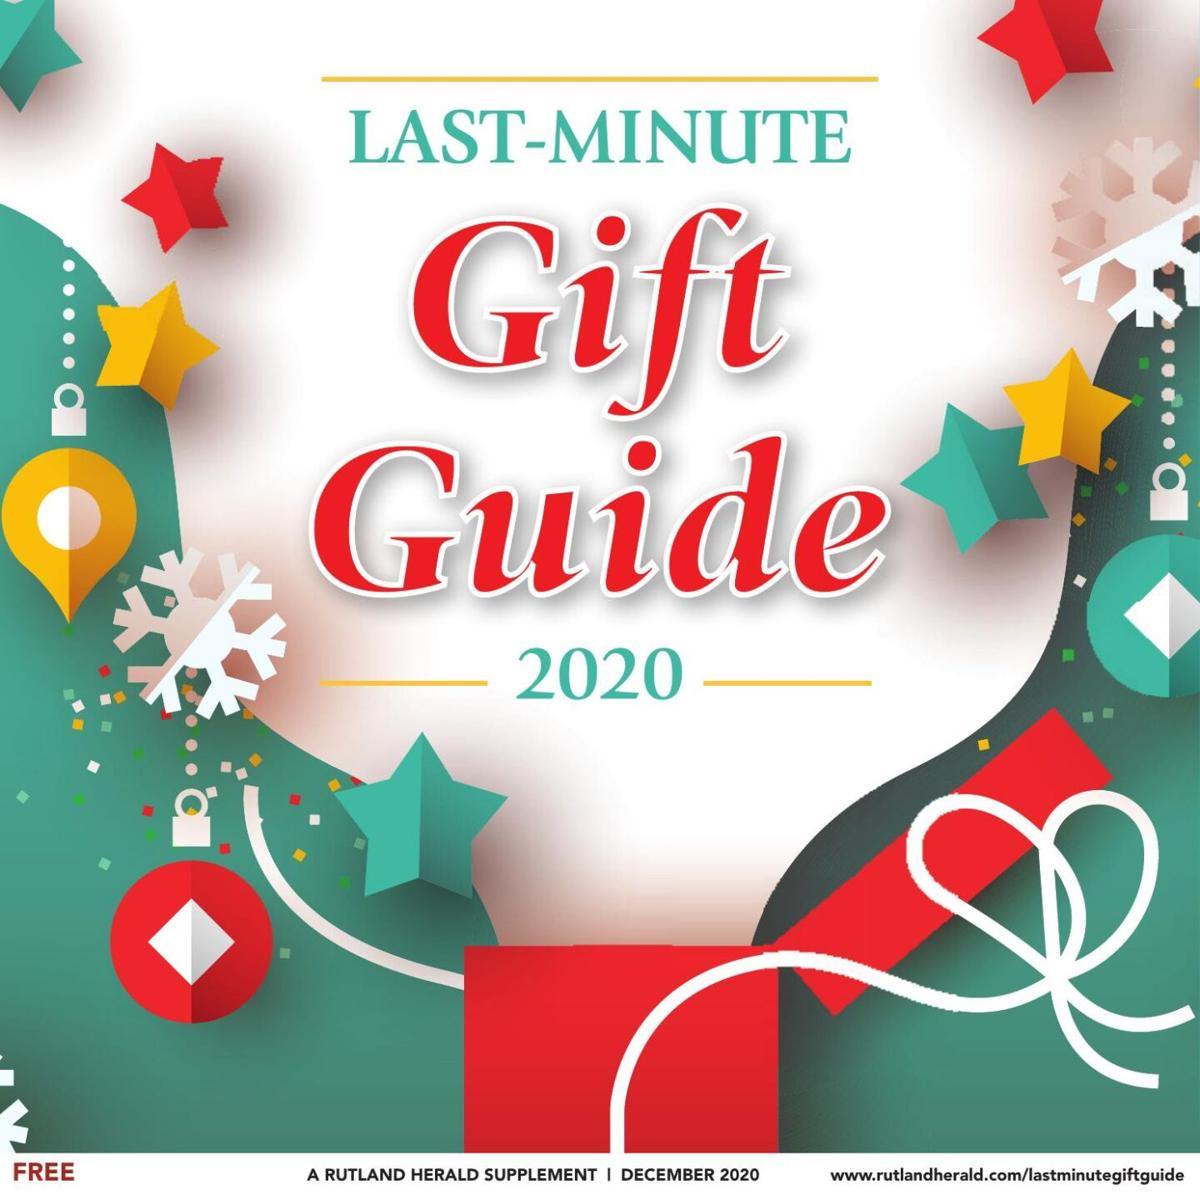 Last Minute Gift Guide 2020